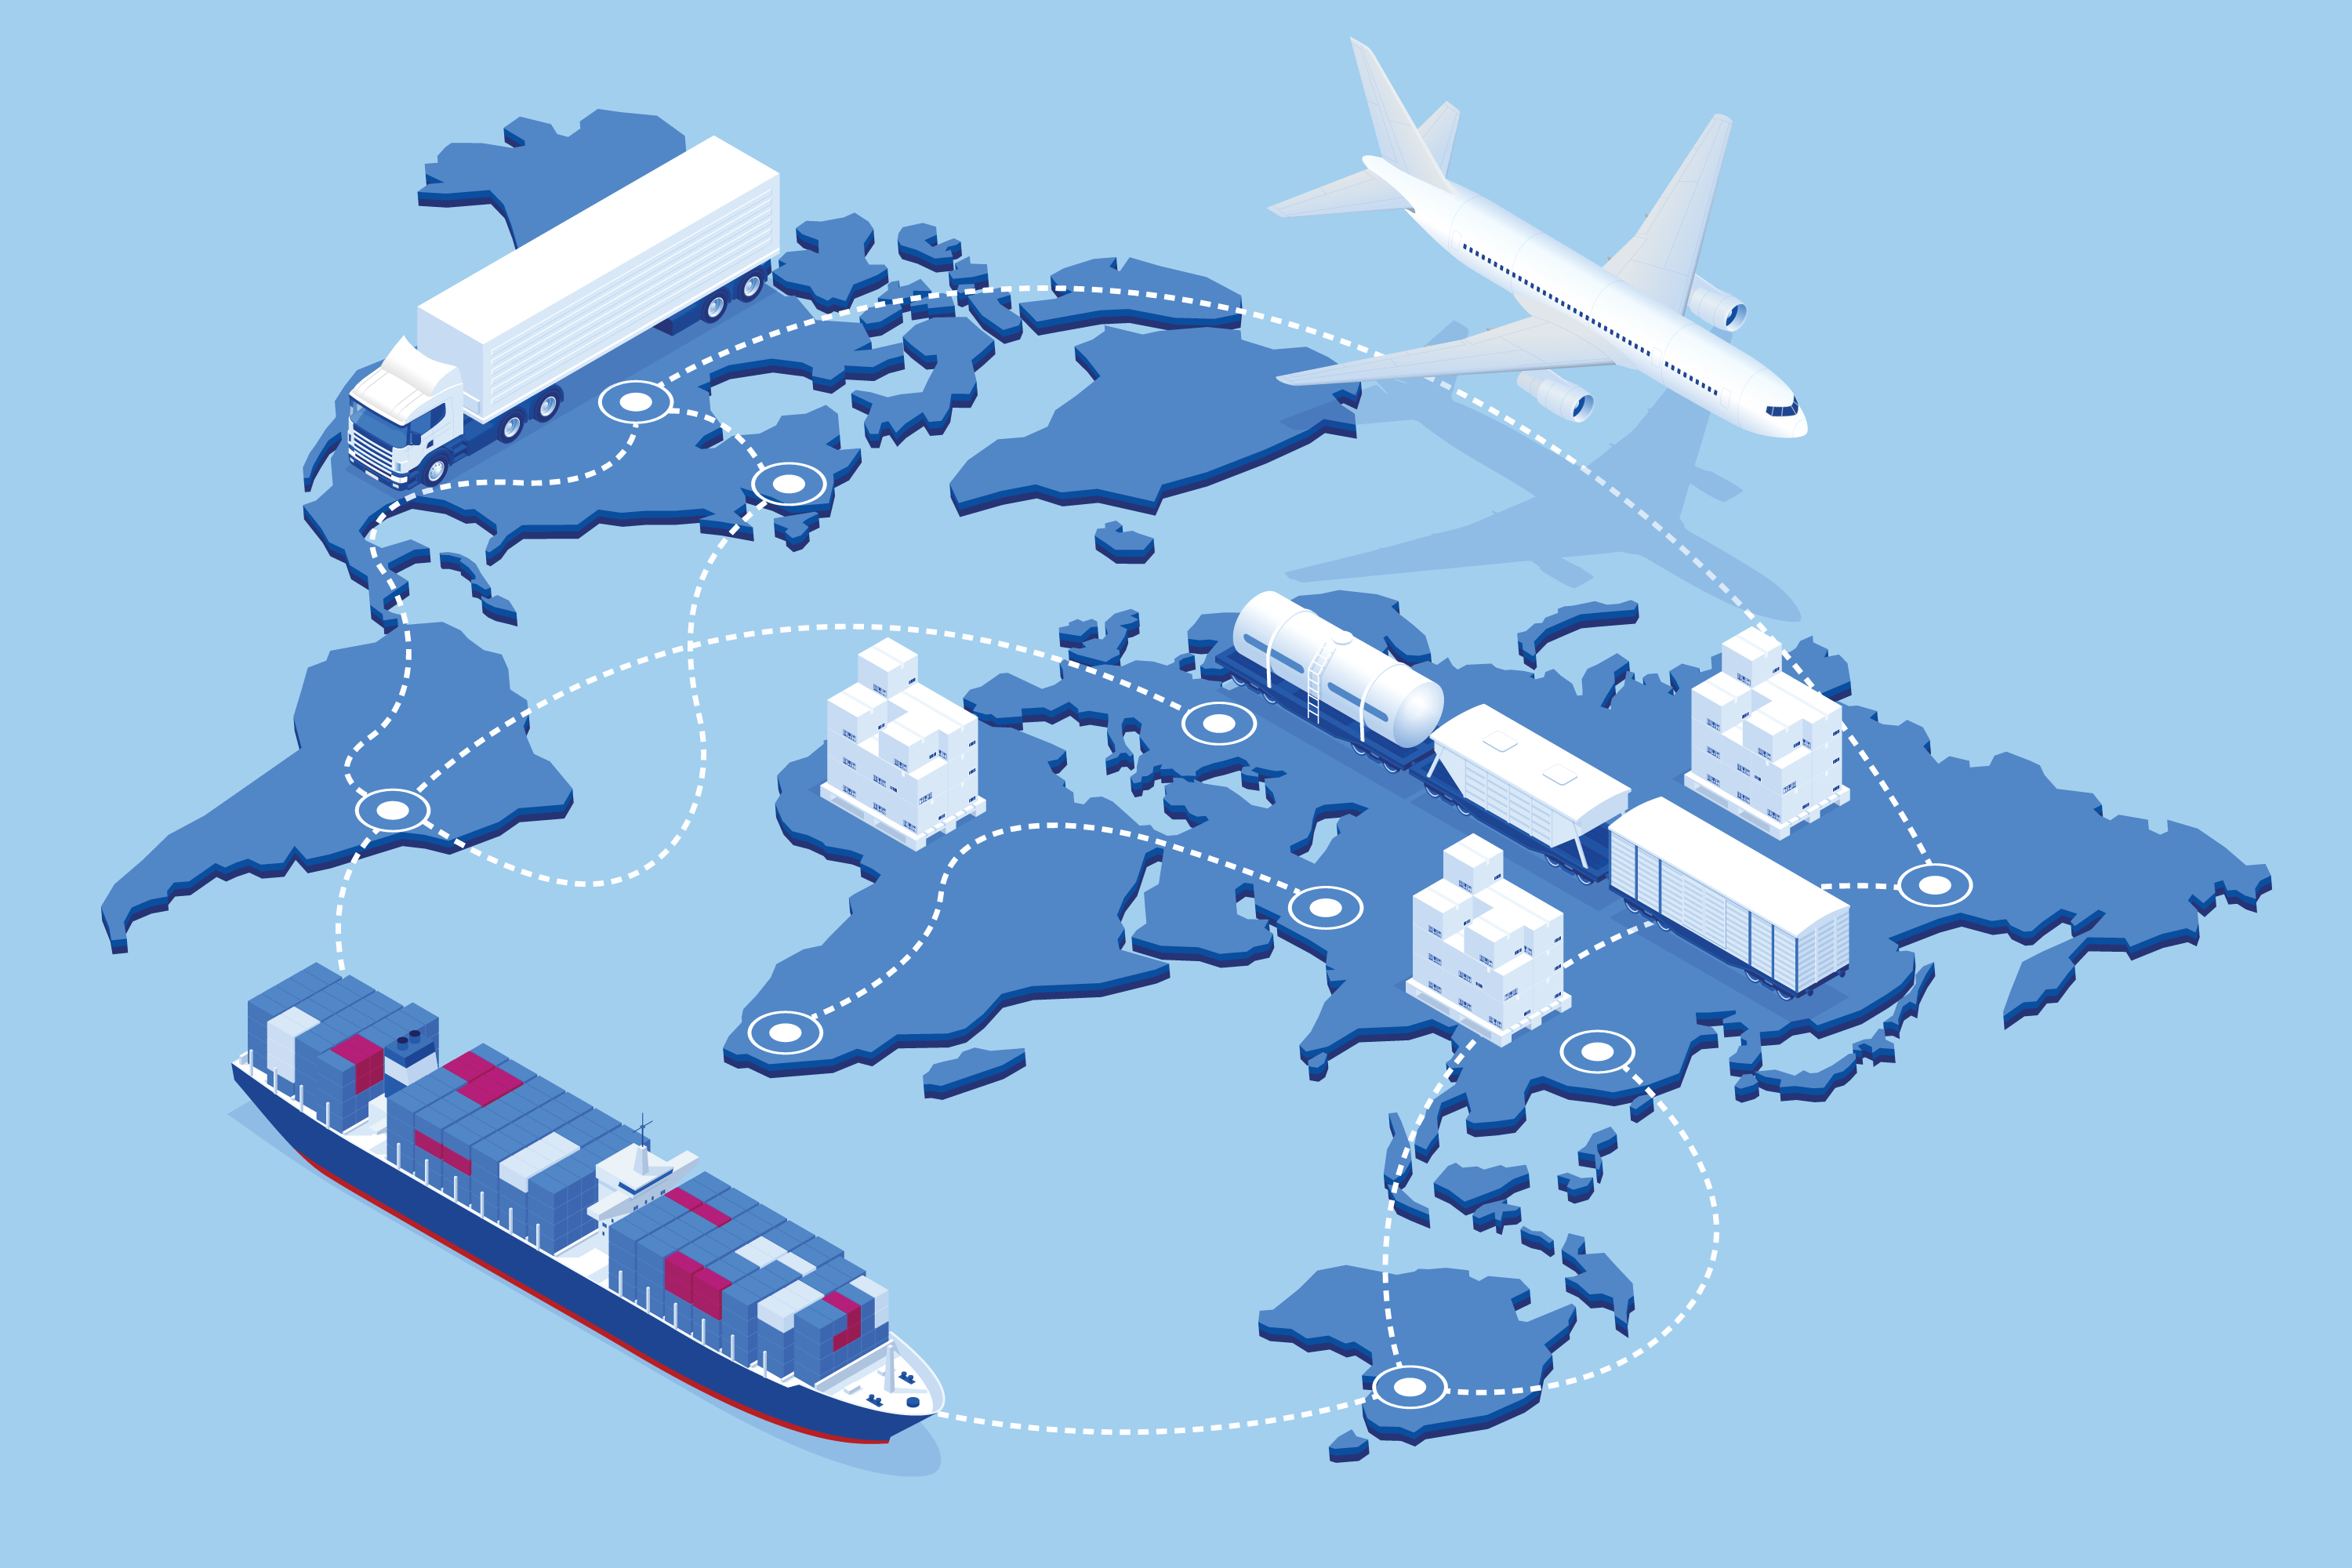 effiecient supply chains in a globalised world